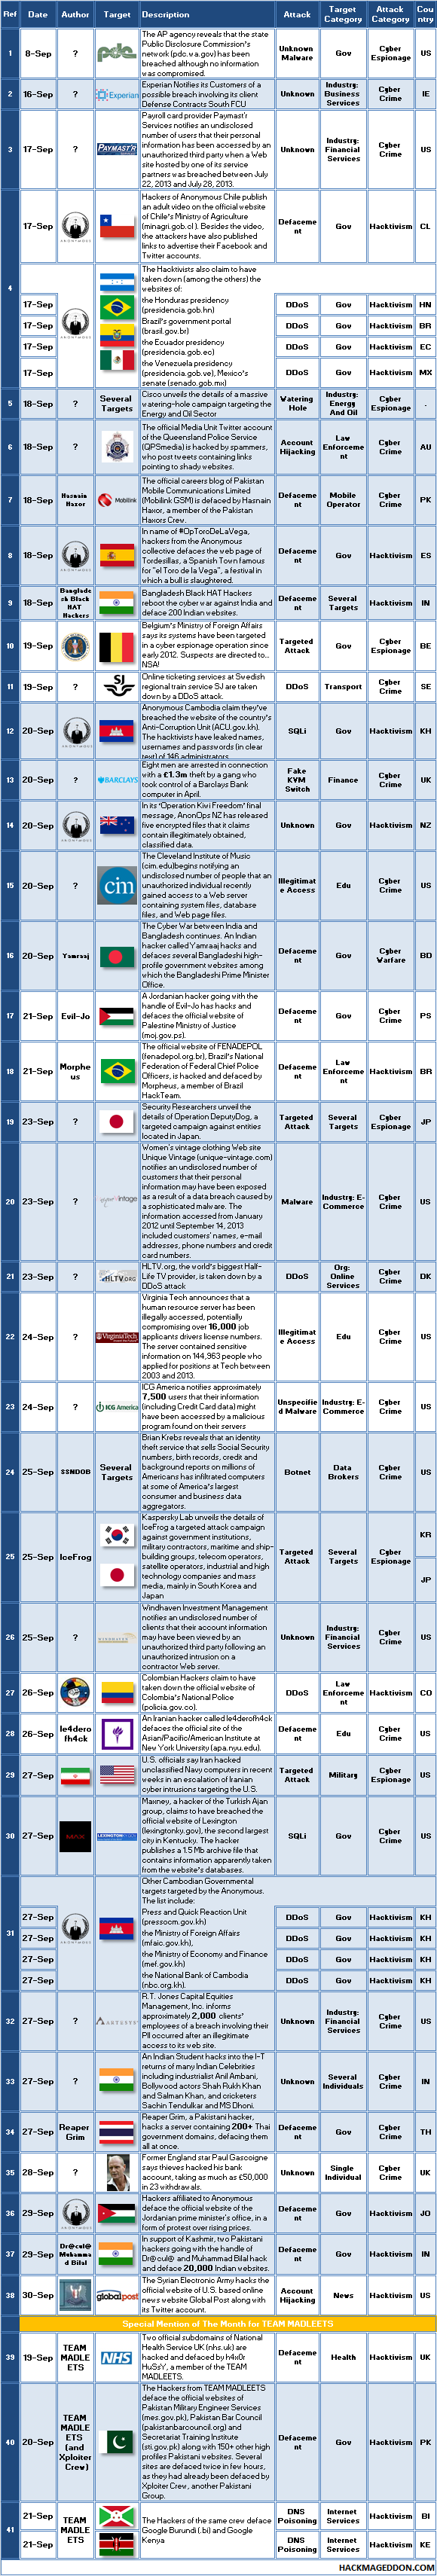 16-30 September 2013 Cyber Attacks Timeline